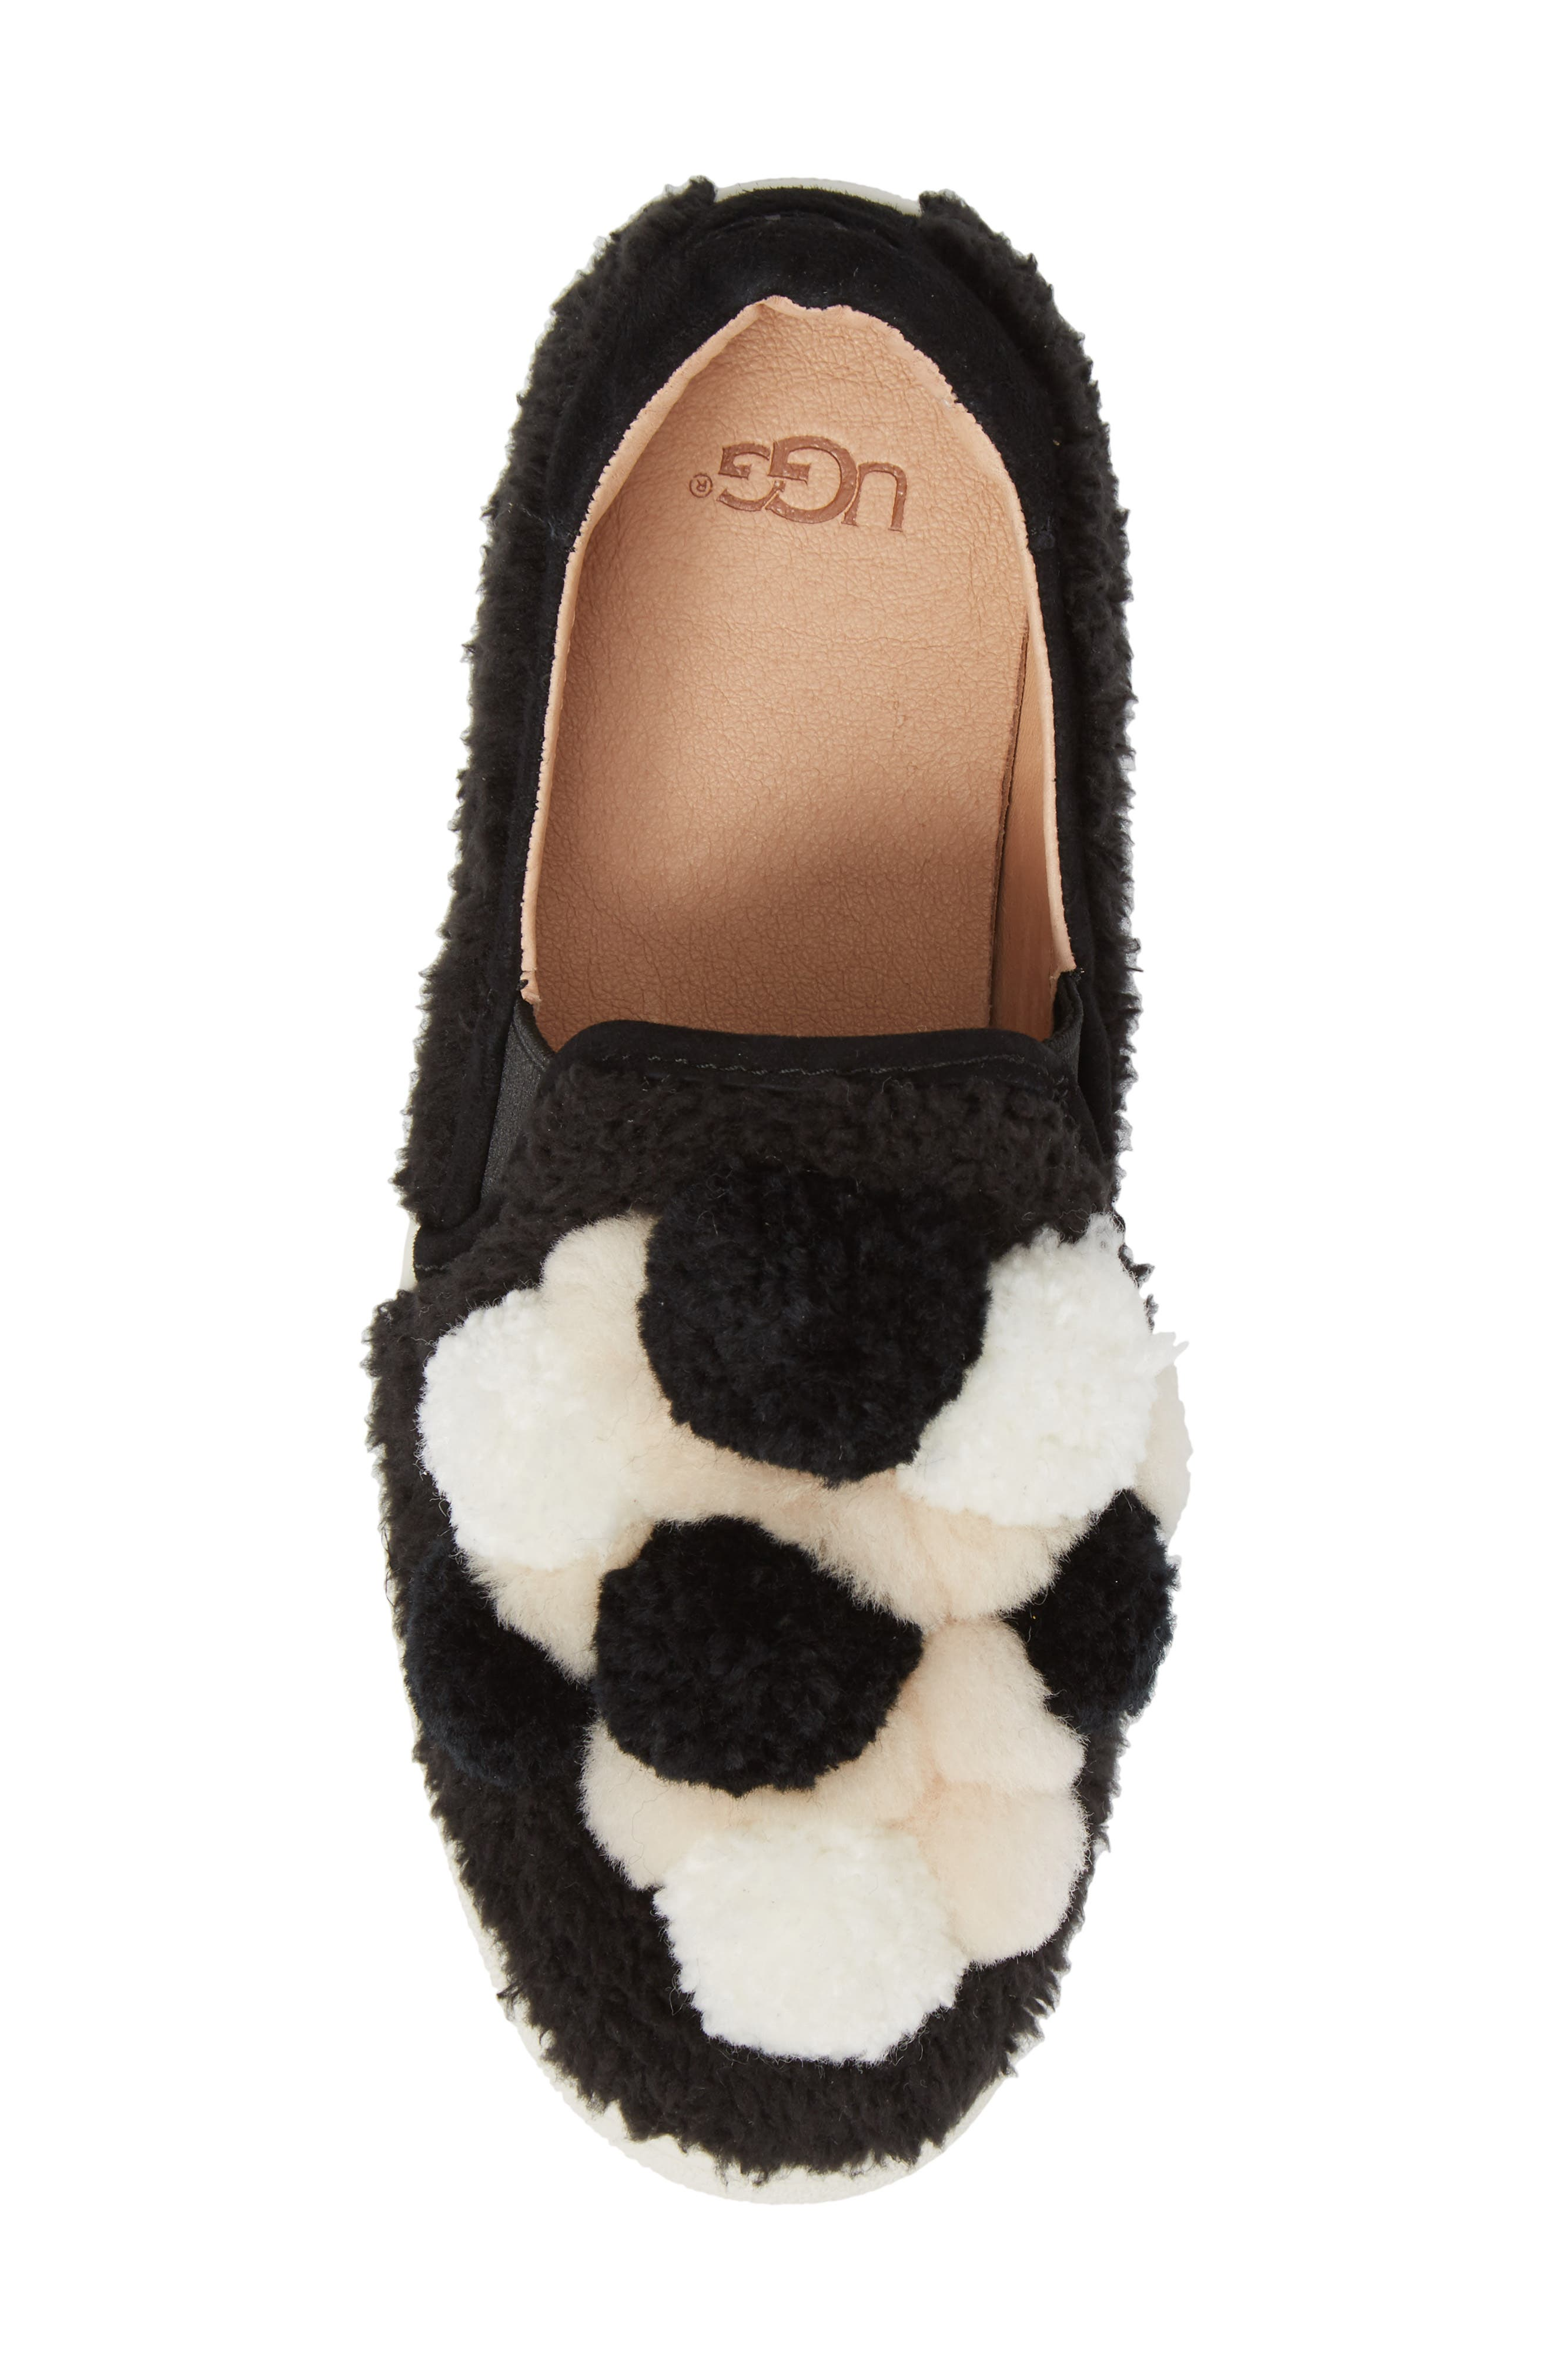 Ricci Plush Genuine Shearling Pompom Slip-On Sneaker,                             Alternate thumbnail 5, color,                             Black